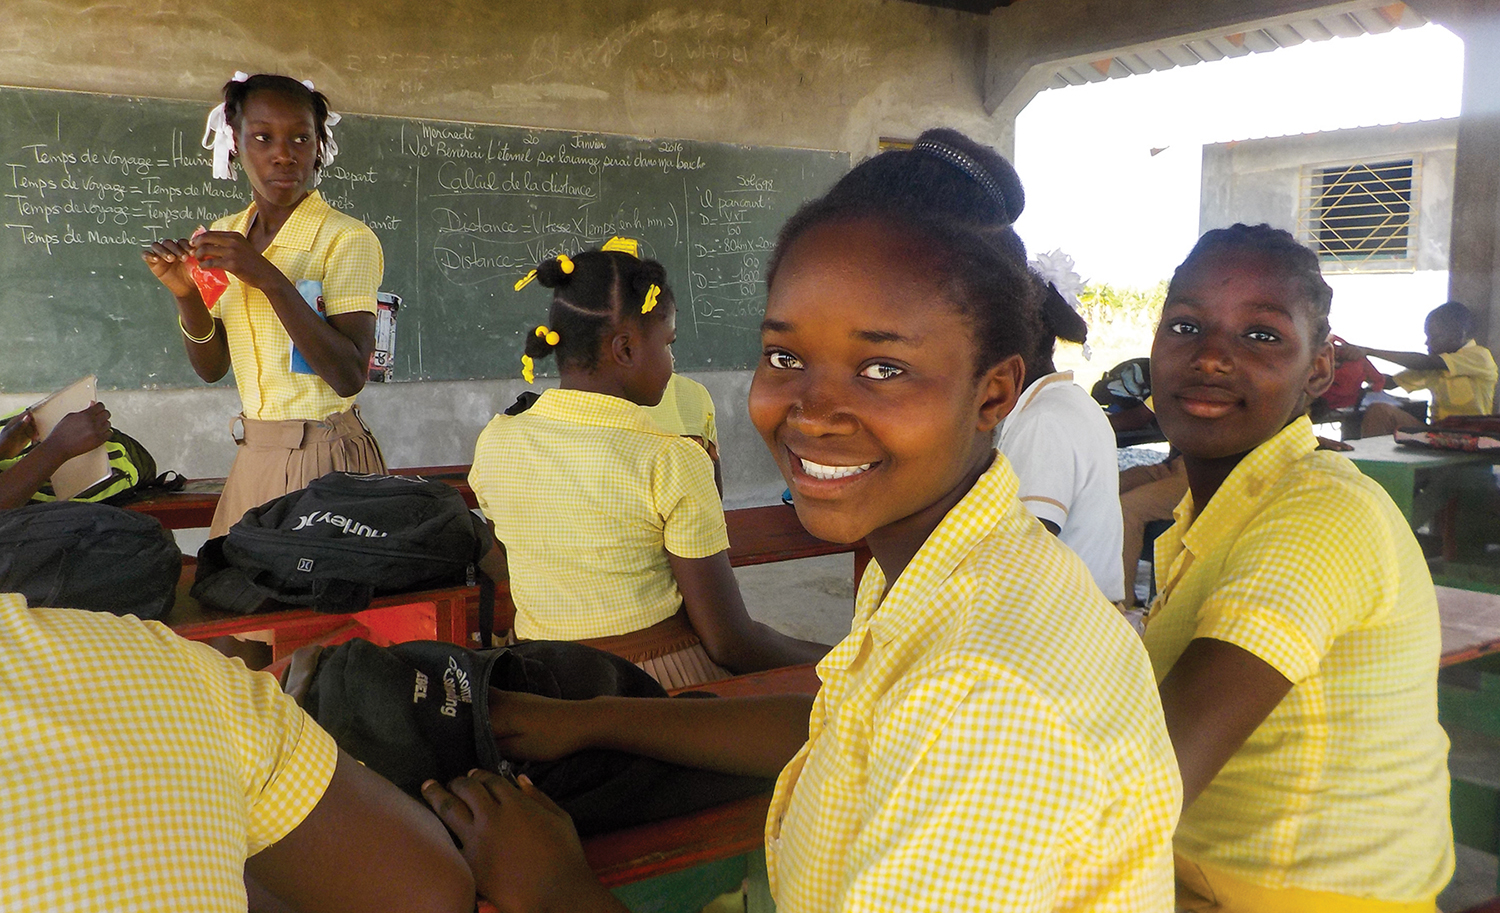 Tamar Calixthe is from the island of La Gonâve and attends school at New Missions in Bord-Mer, as there is no school for her to attend on the island.